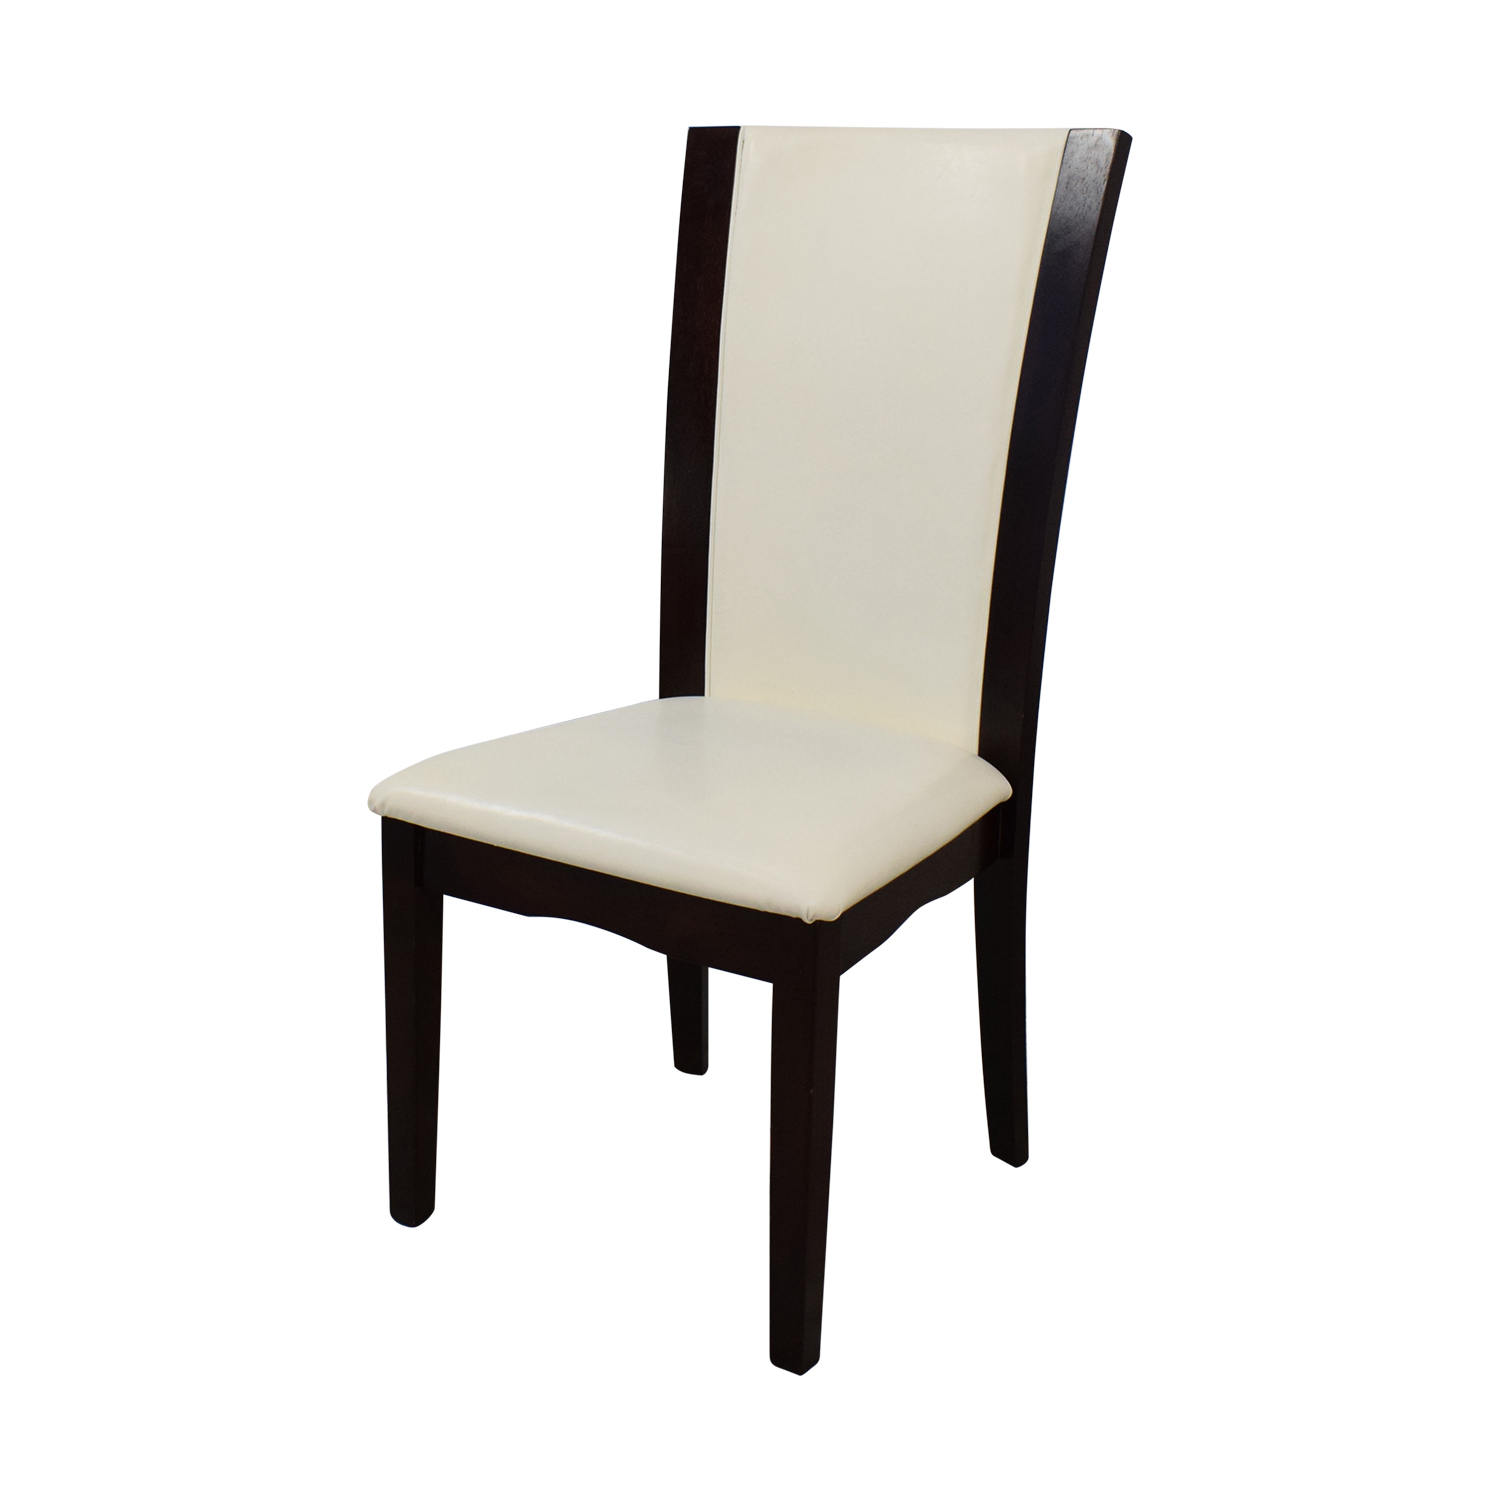 Raymour & Flanigan Raymour & Flanigan Dining Chairs coupon